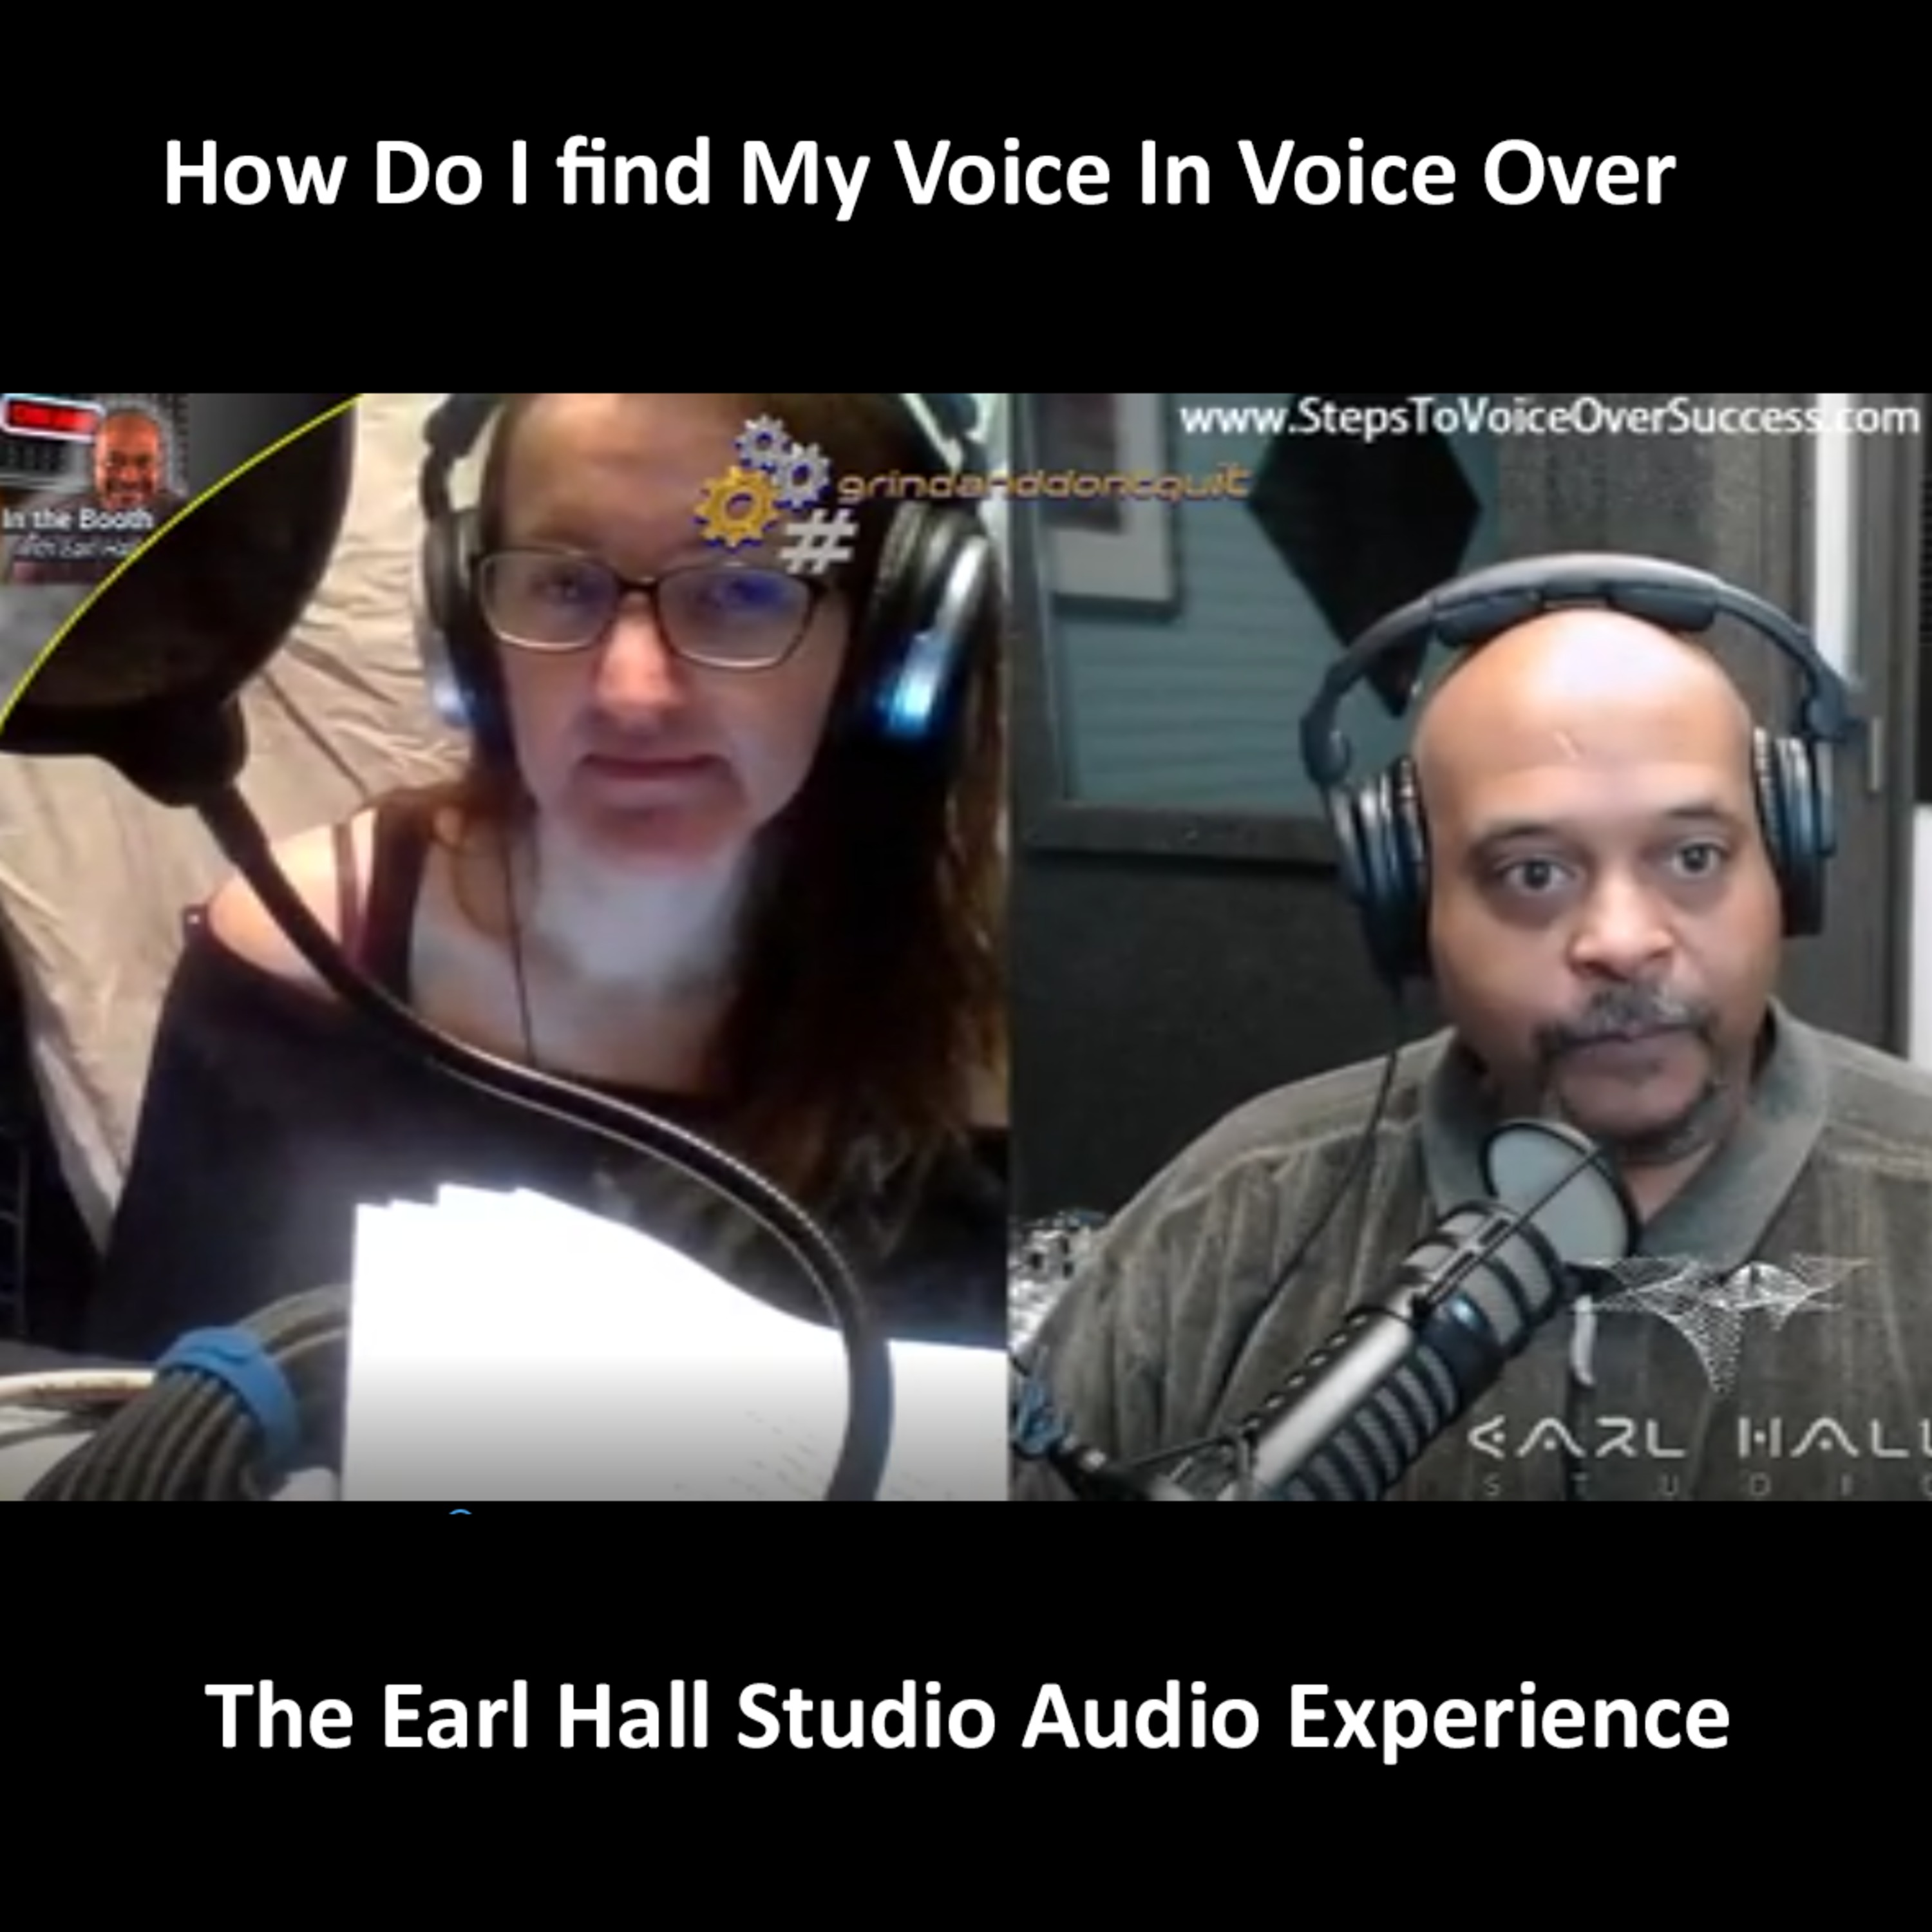 Earl hall voice over